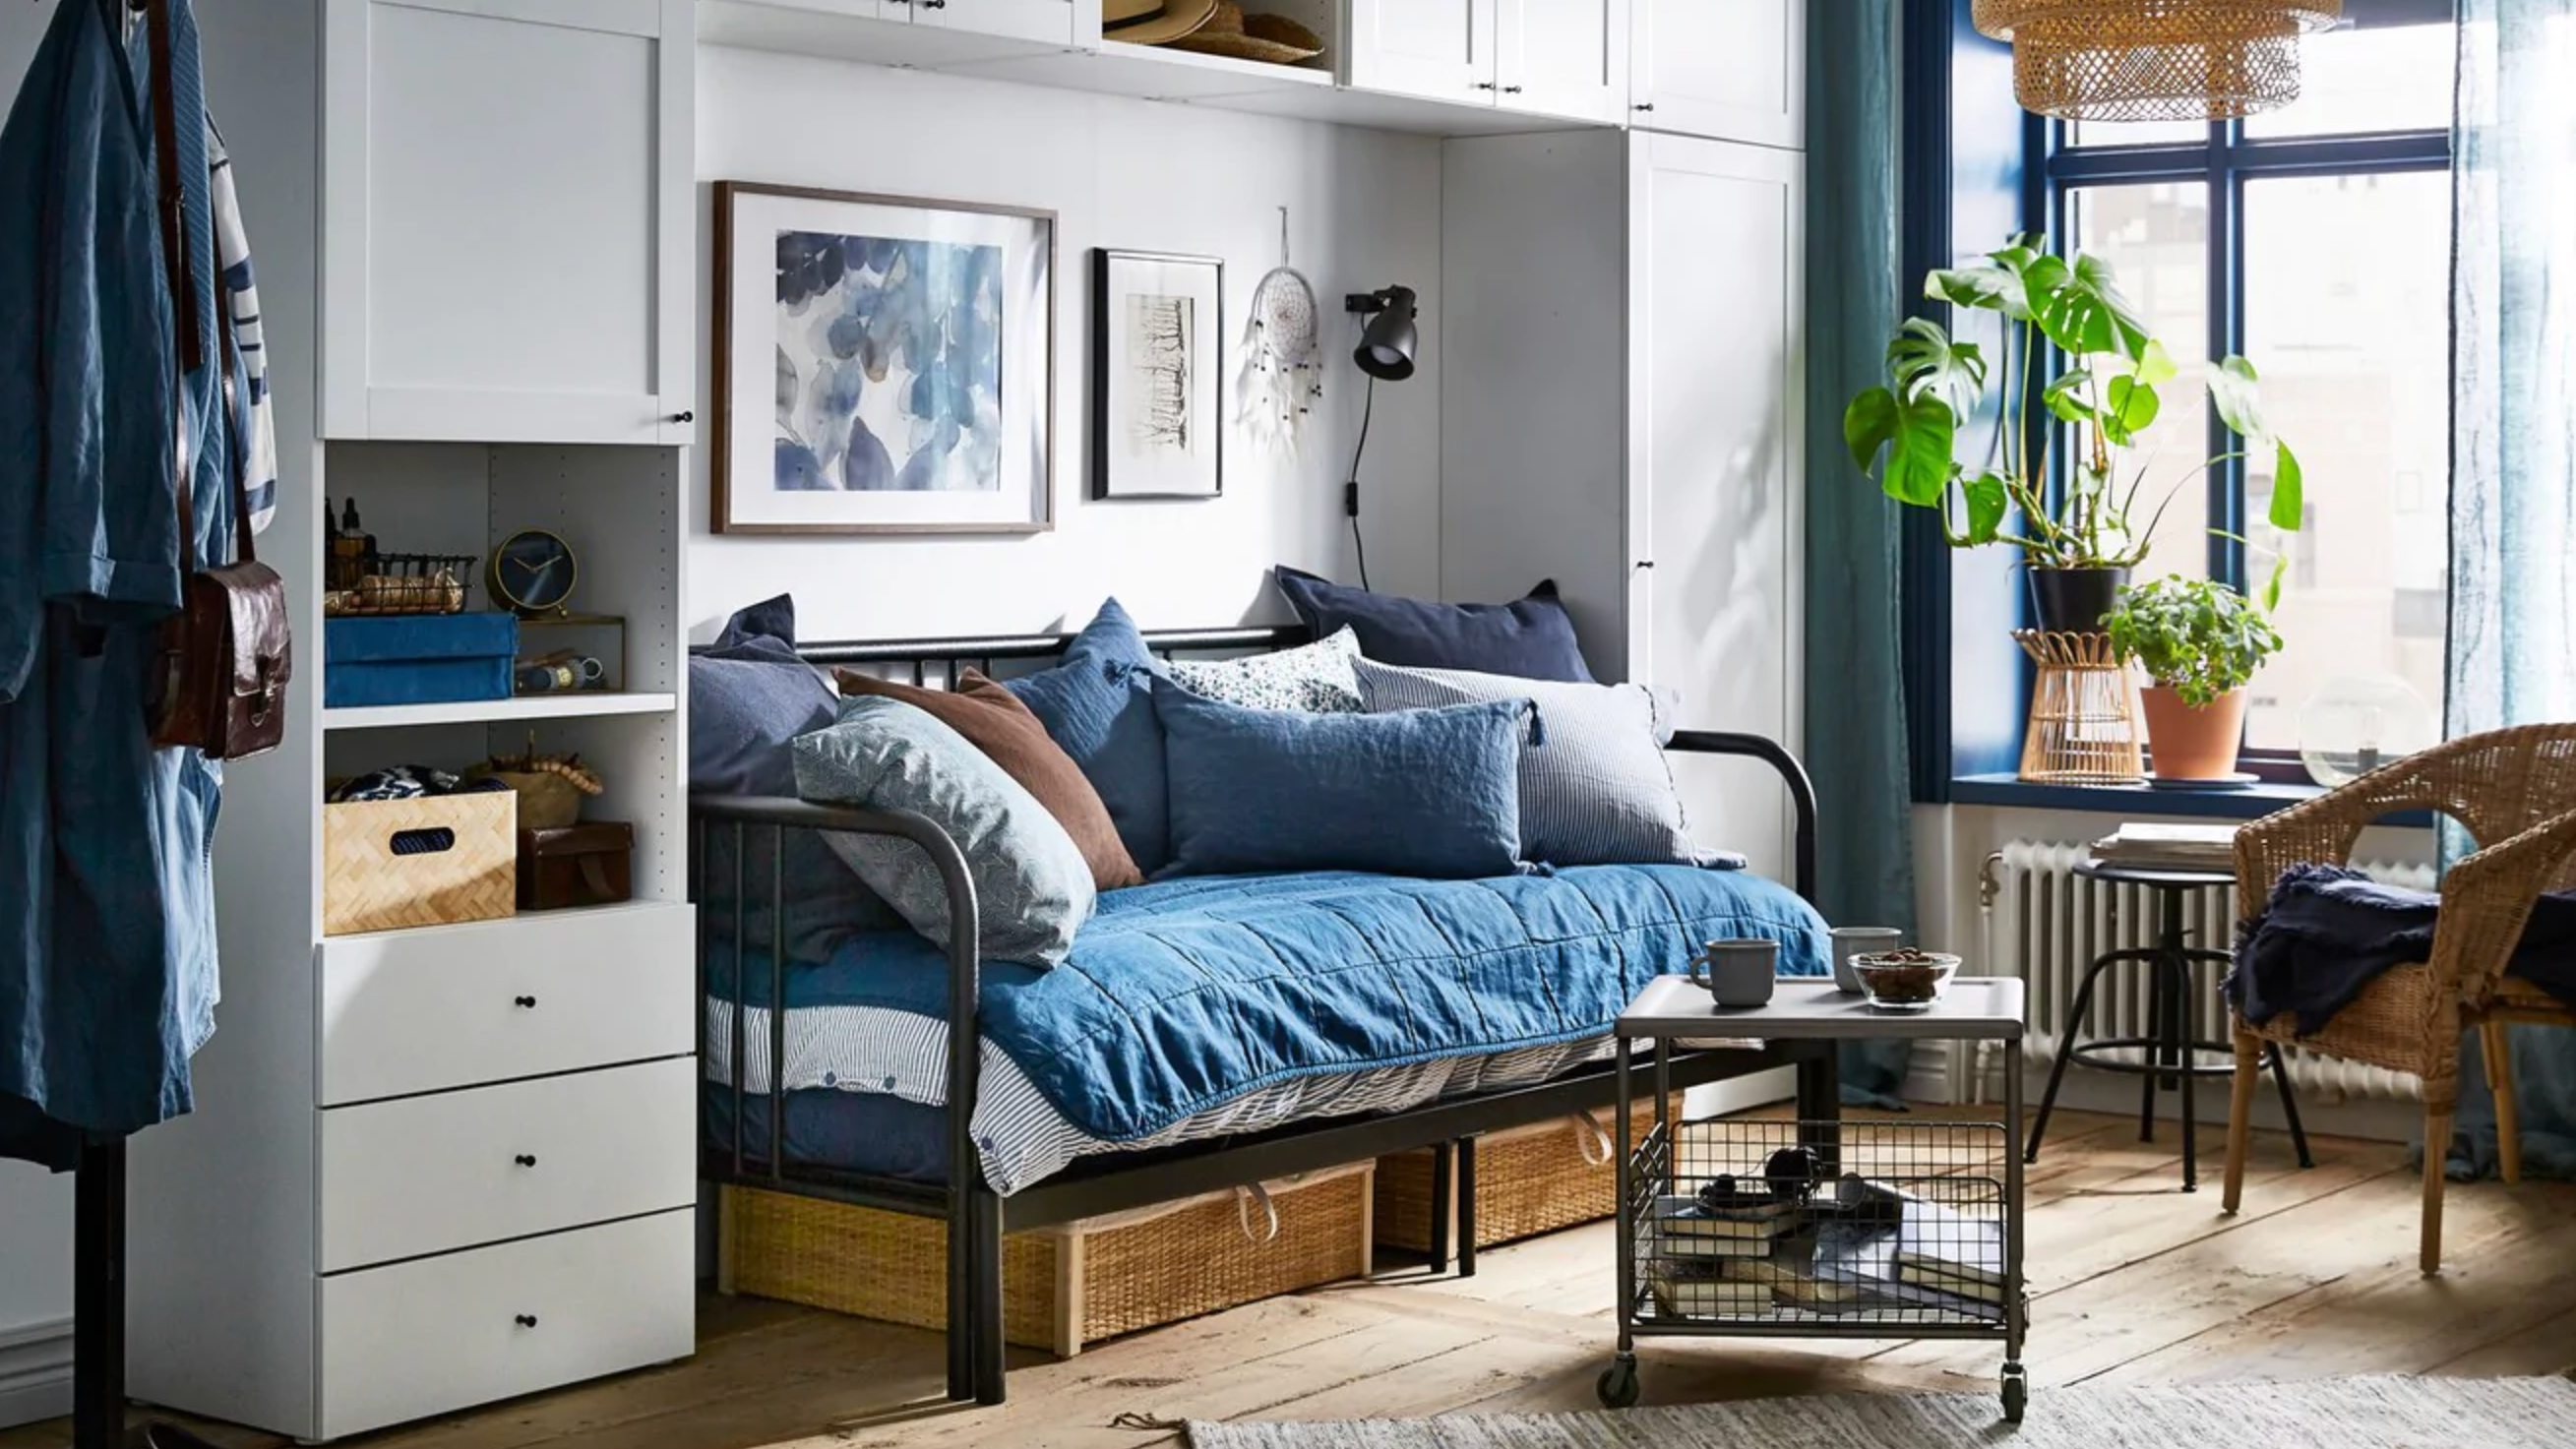 4 small bedroom ideas – stylish looks to copy in a tiny space